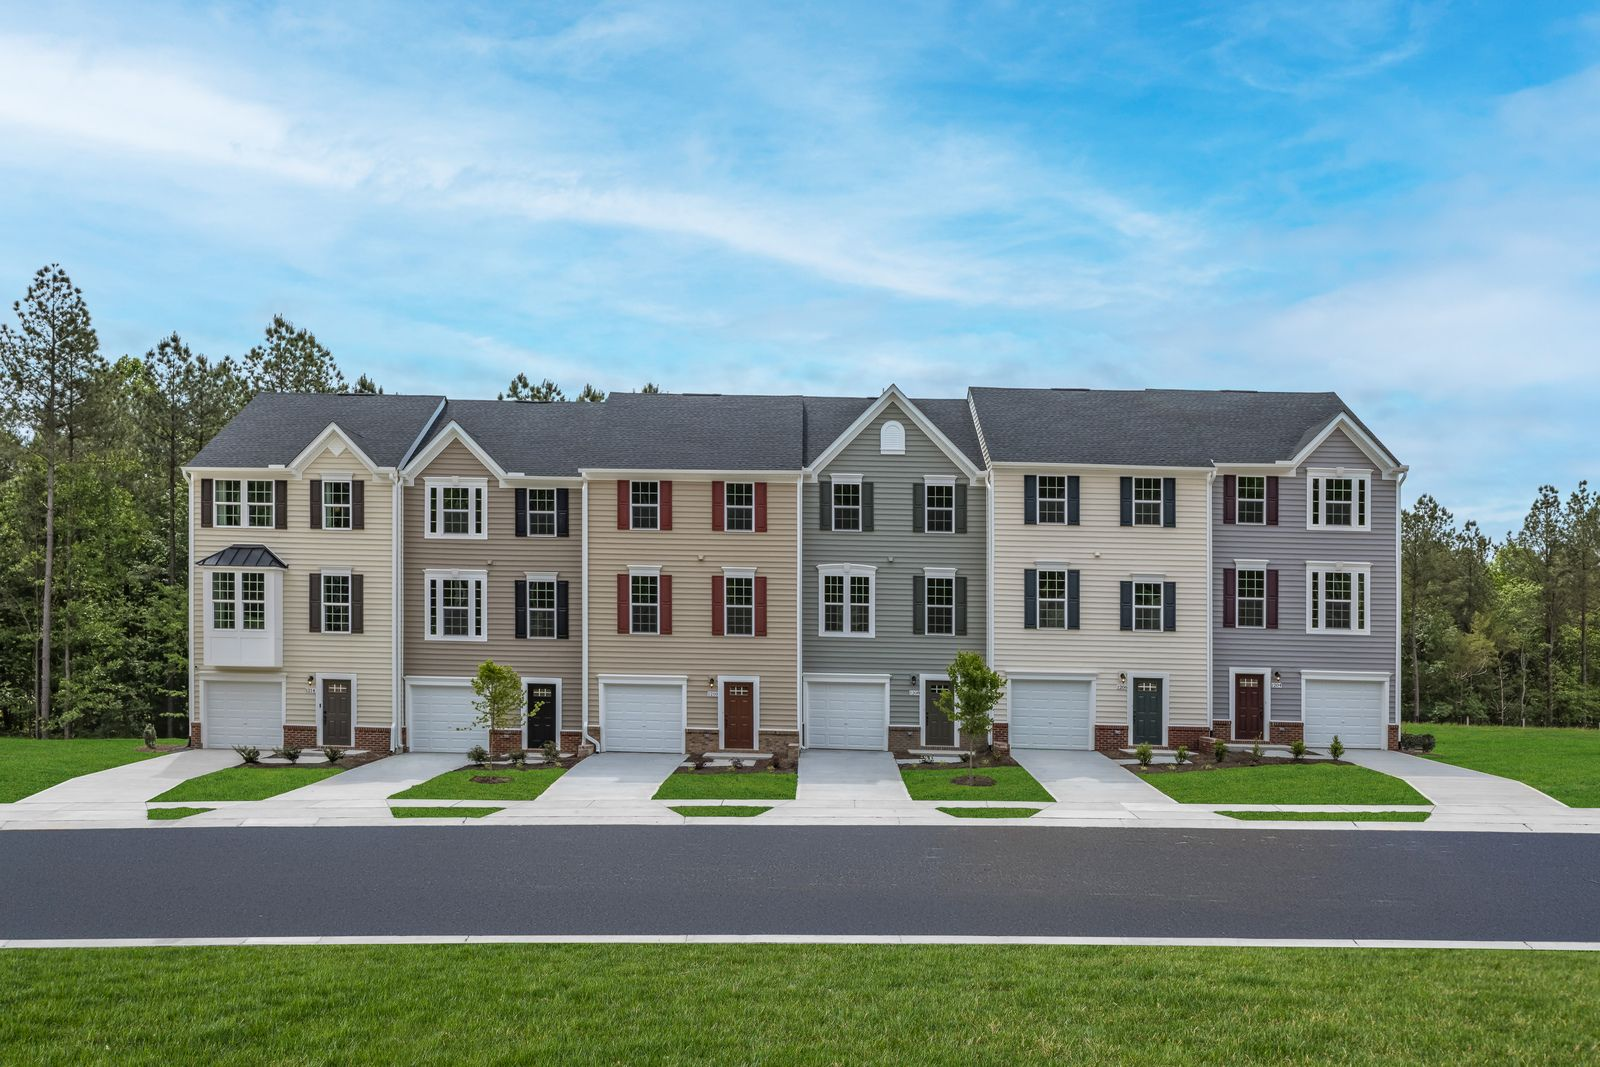 Garage townhomes with wooded homesites close to Duke, RTP & UNC.